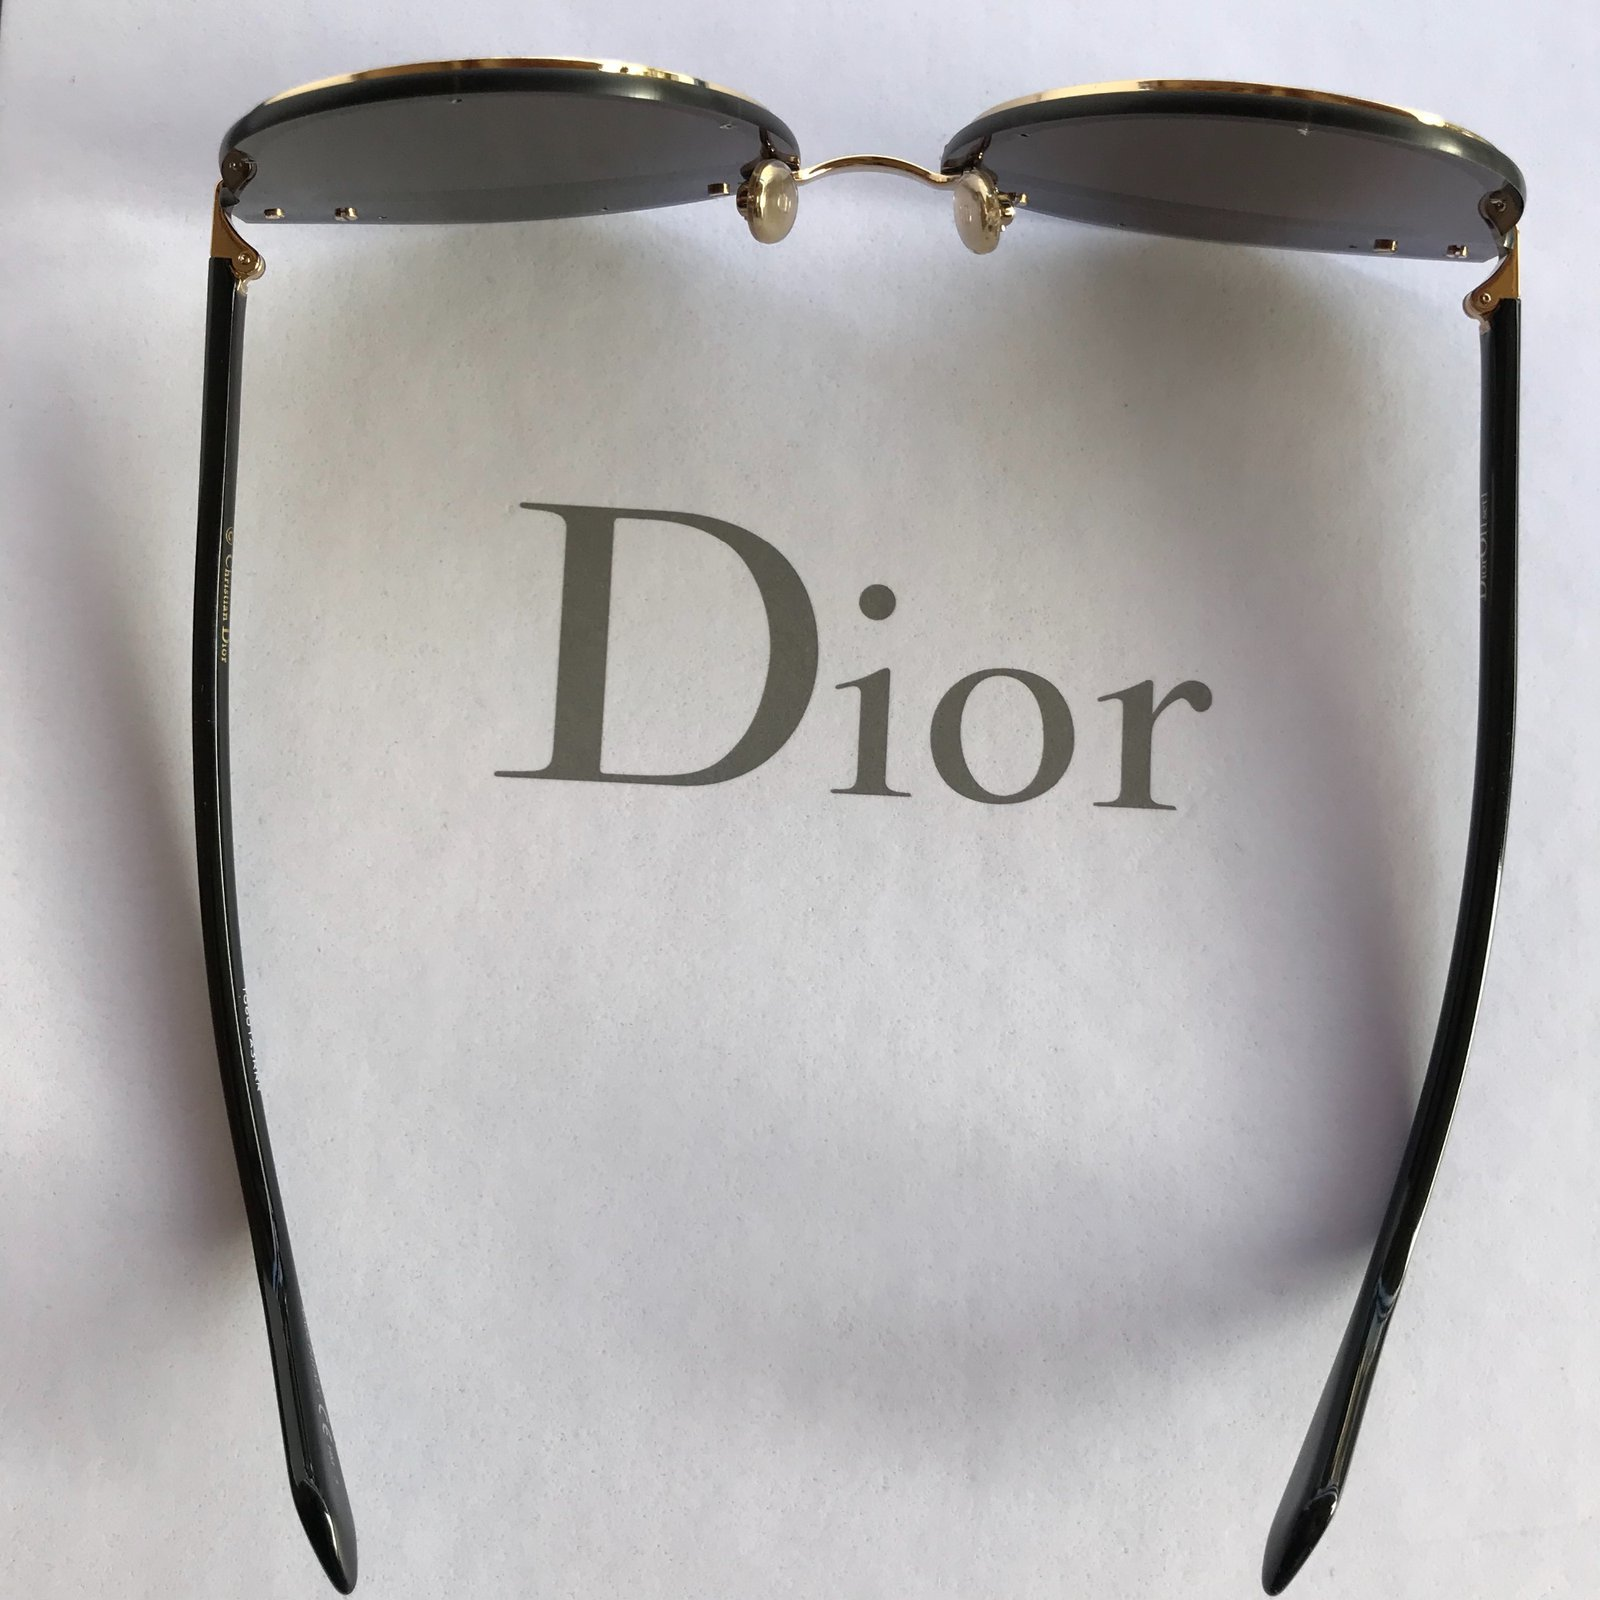 0d45c2cbfc81a Facebook · Pin This. Dior Dior offset sunglasses Sunglasses Metal Black ...